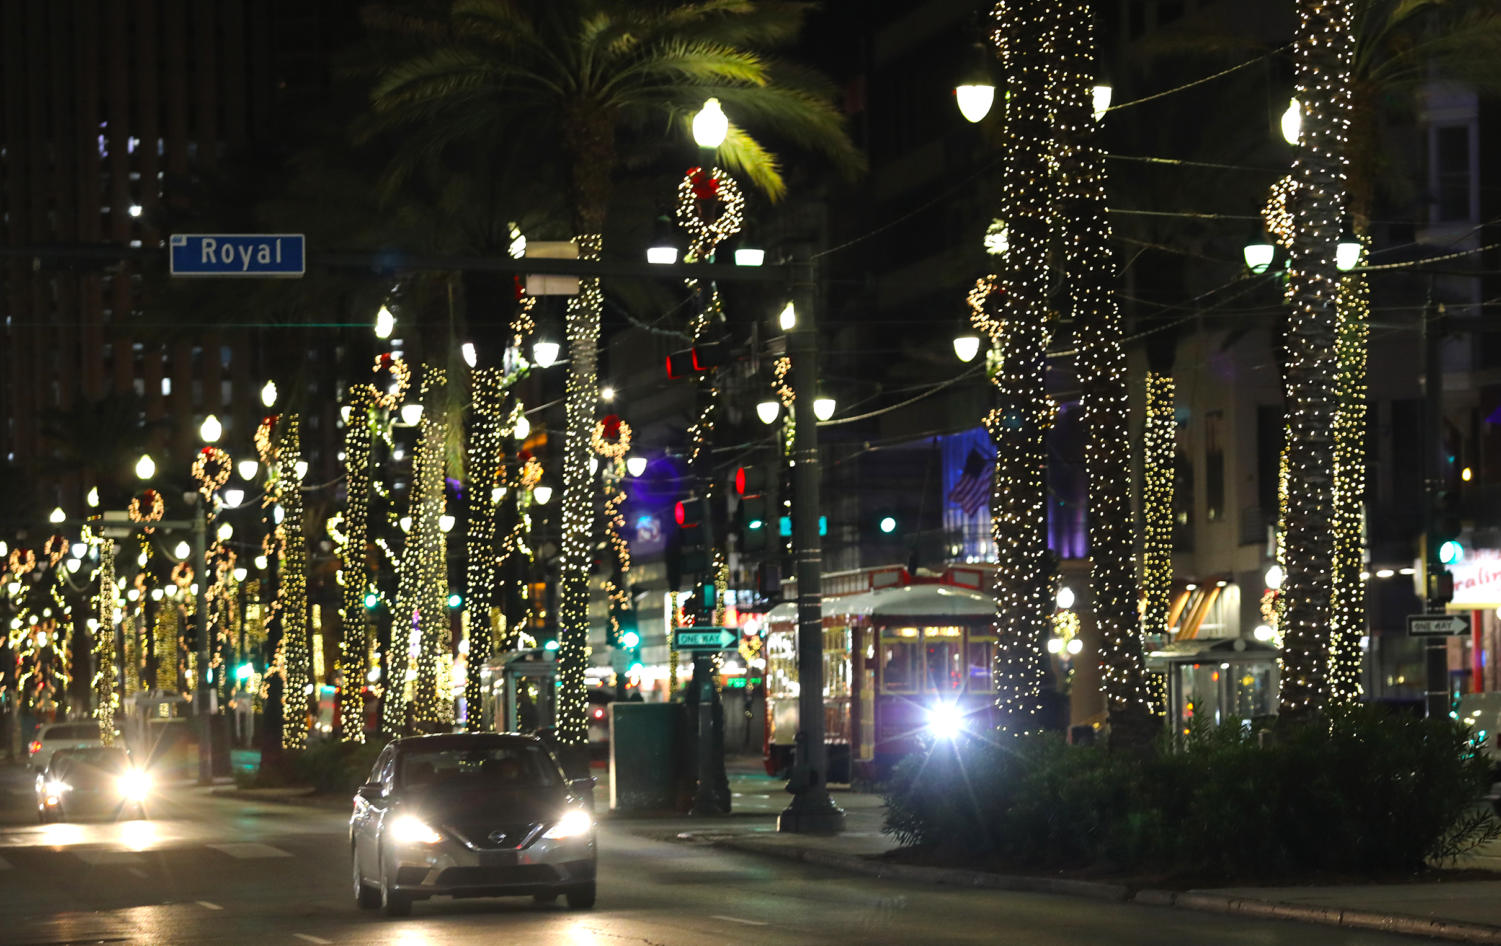 The downtown stretch of Canal St. is fitted for the holidays as lights wrap around trees and lamp posts. Photo credit: Andres Fuentes